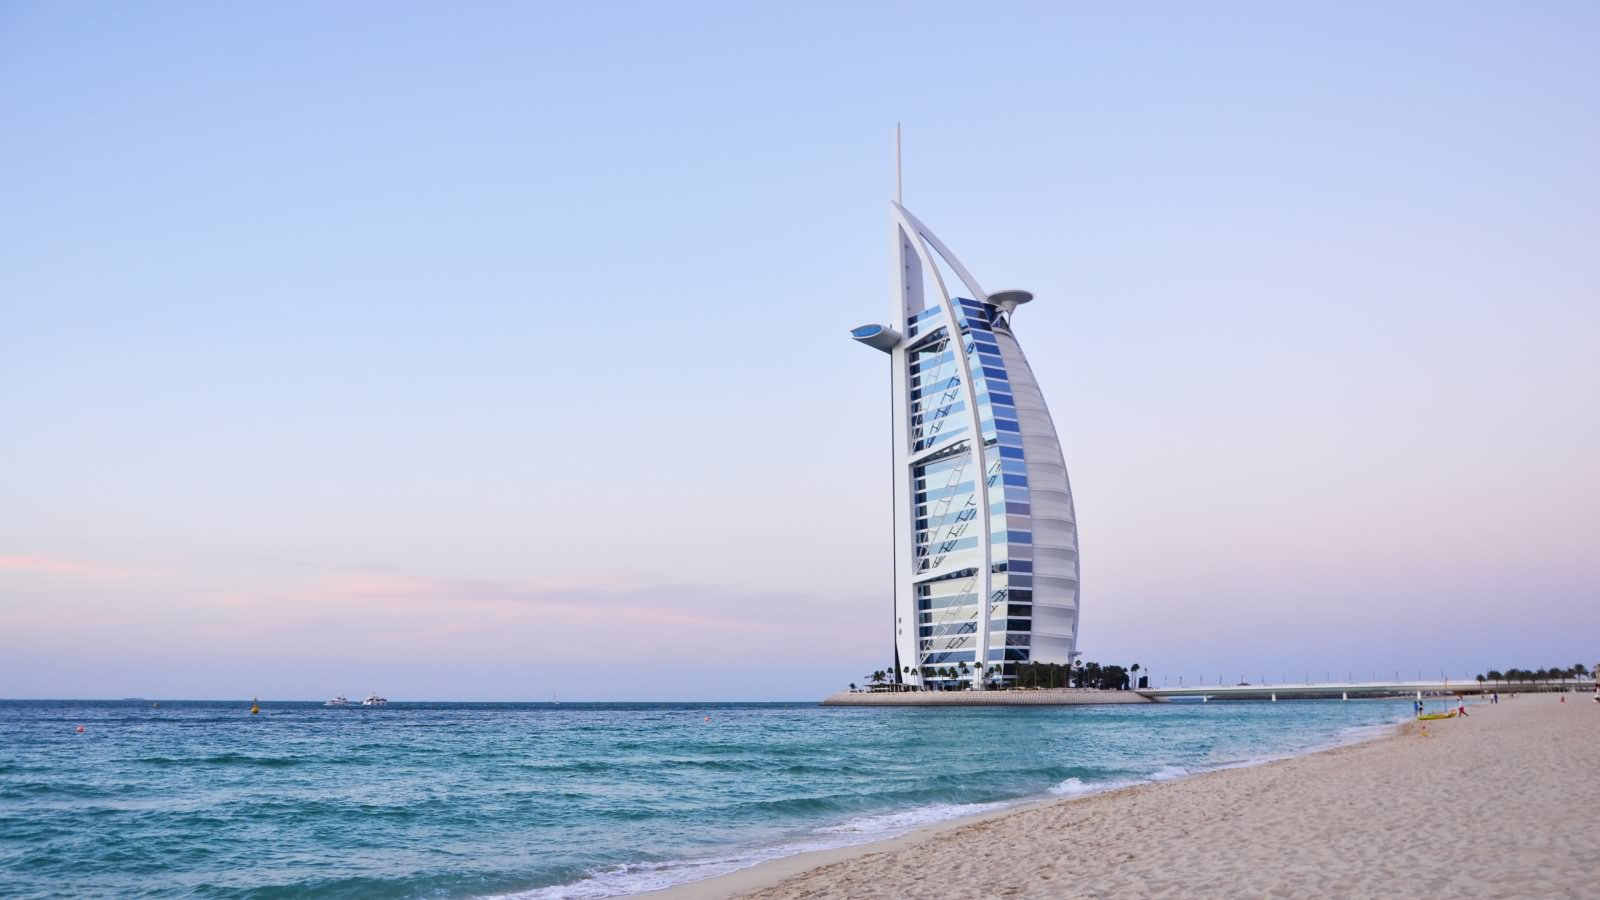 20 very beautiful burj al arab dubai pictures and images for Burj arab dubai